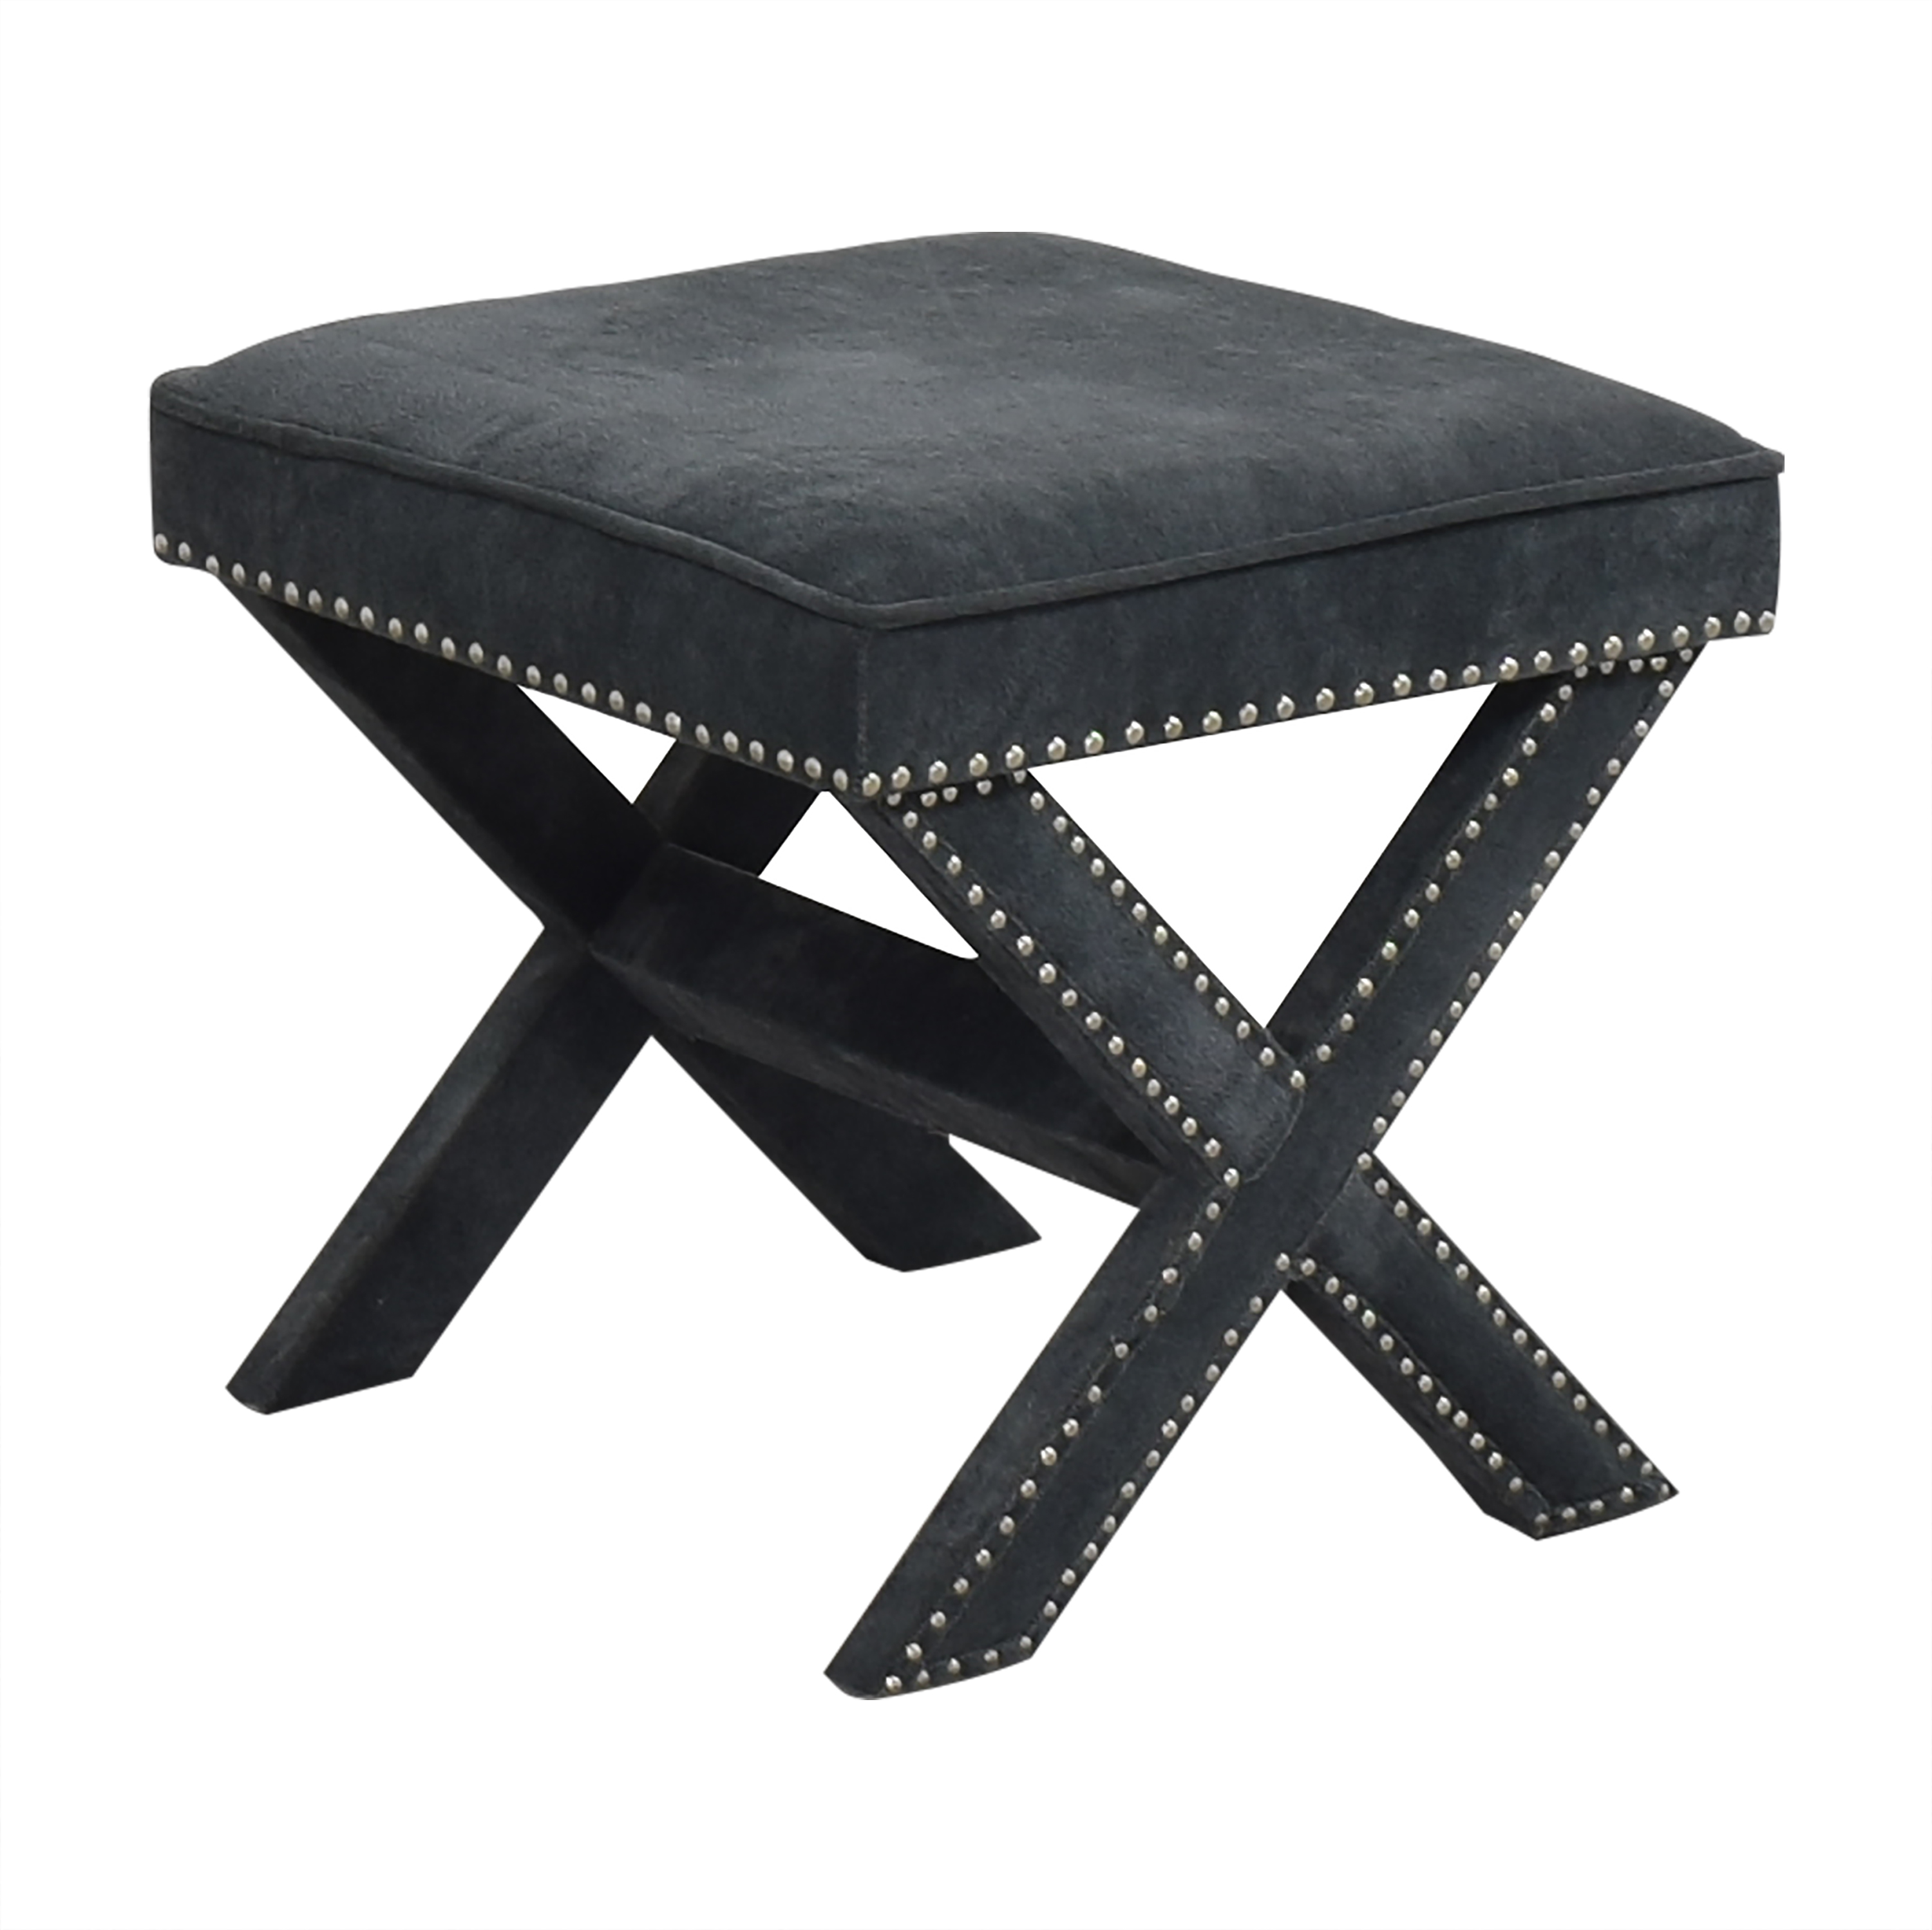 Studded X Bench Ottoman dimensions